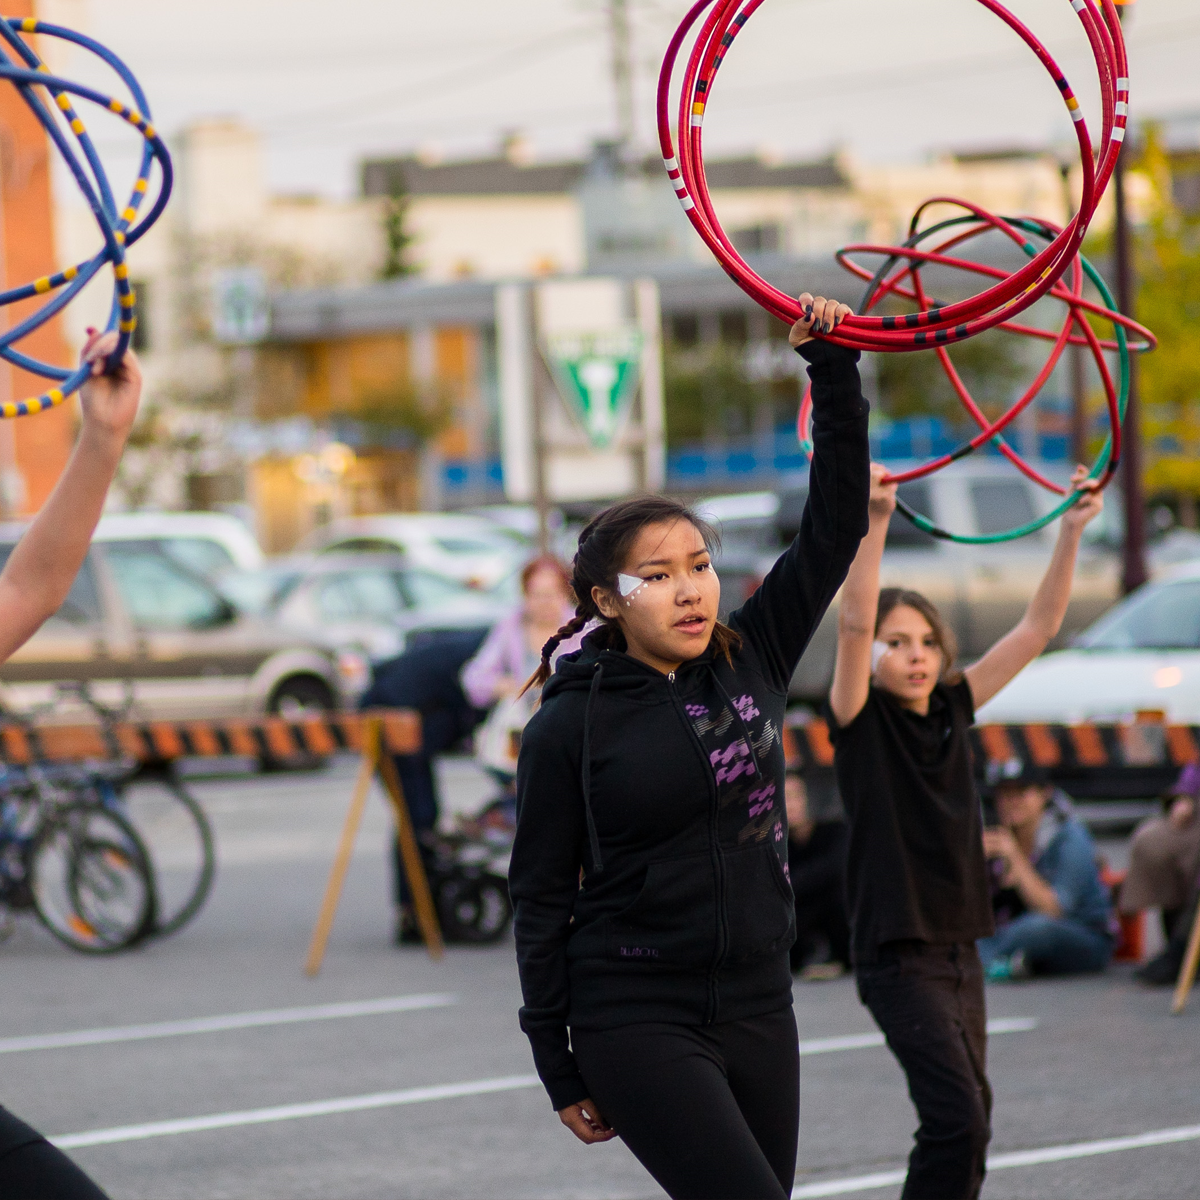 Insites Series. A hoop dance performed by Indigenous youth in the photo.